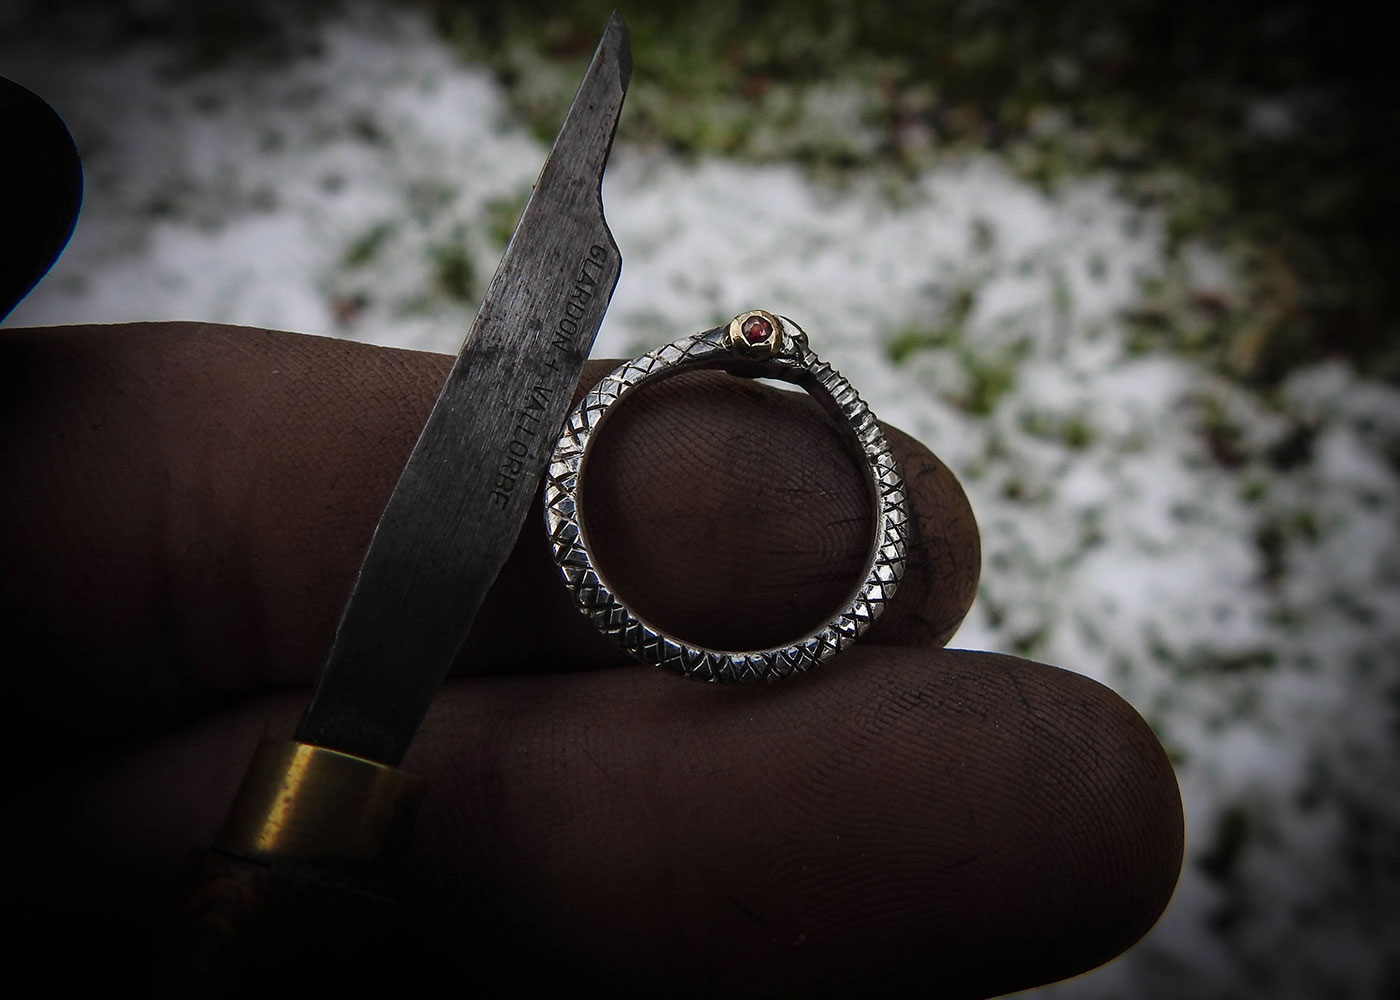 Ouroboros ring - Jörmungandr handcrafted and Recycled antique sterling silver fork